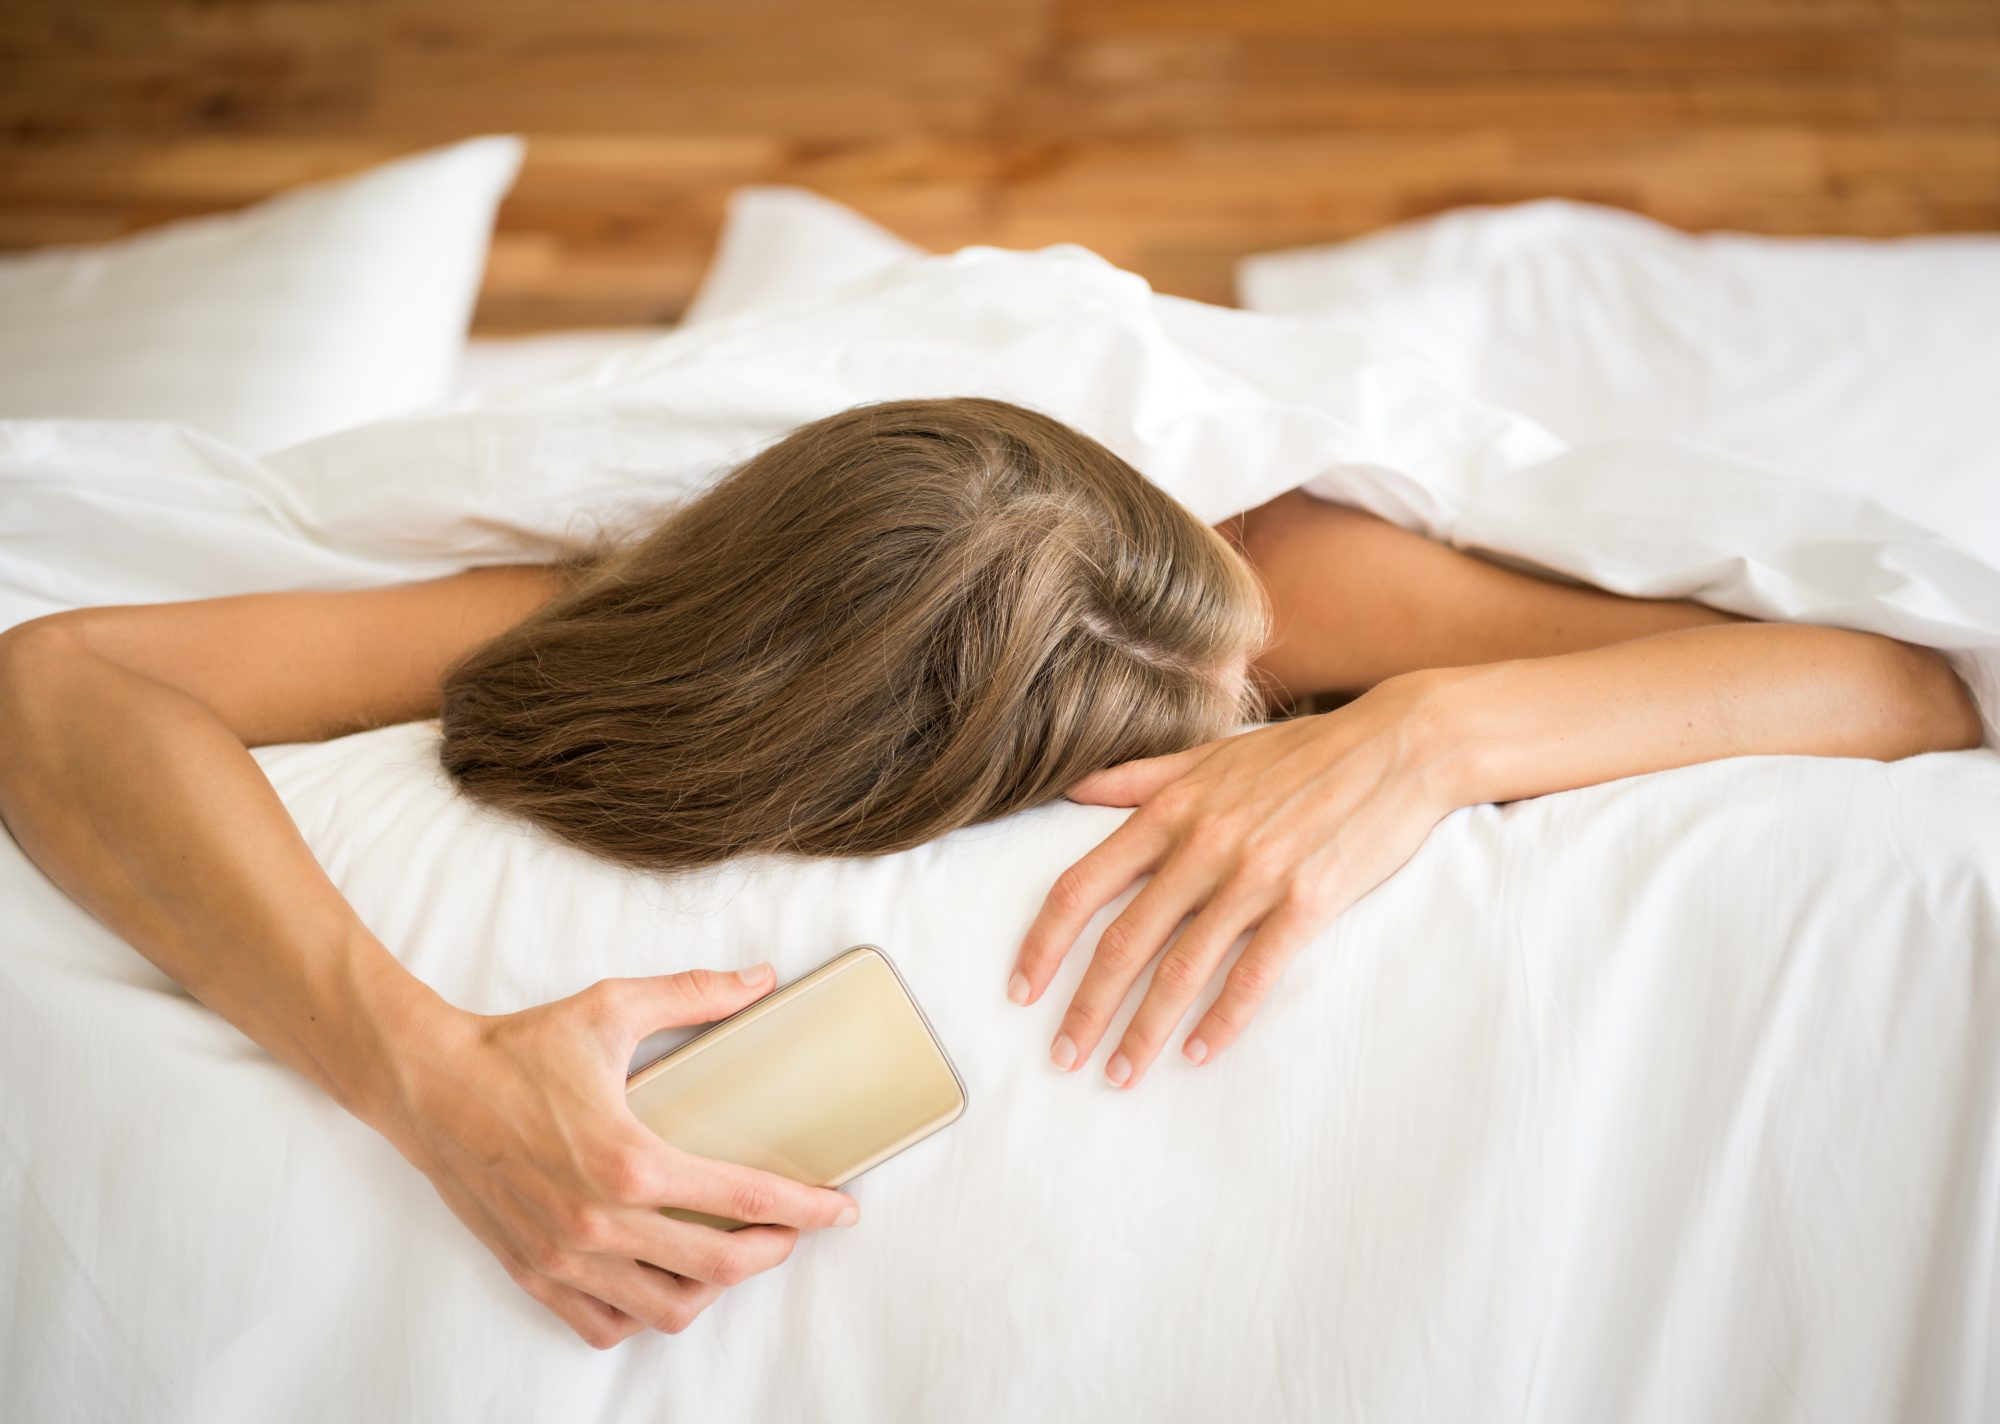 Woman Sleeping in Bed Holding Phone